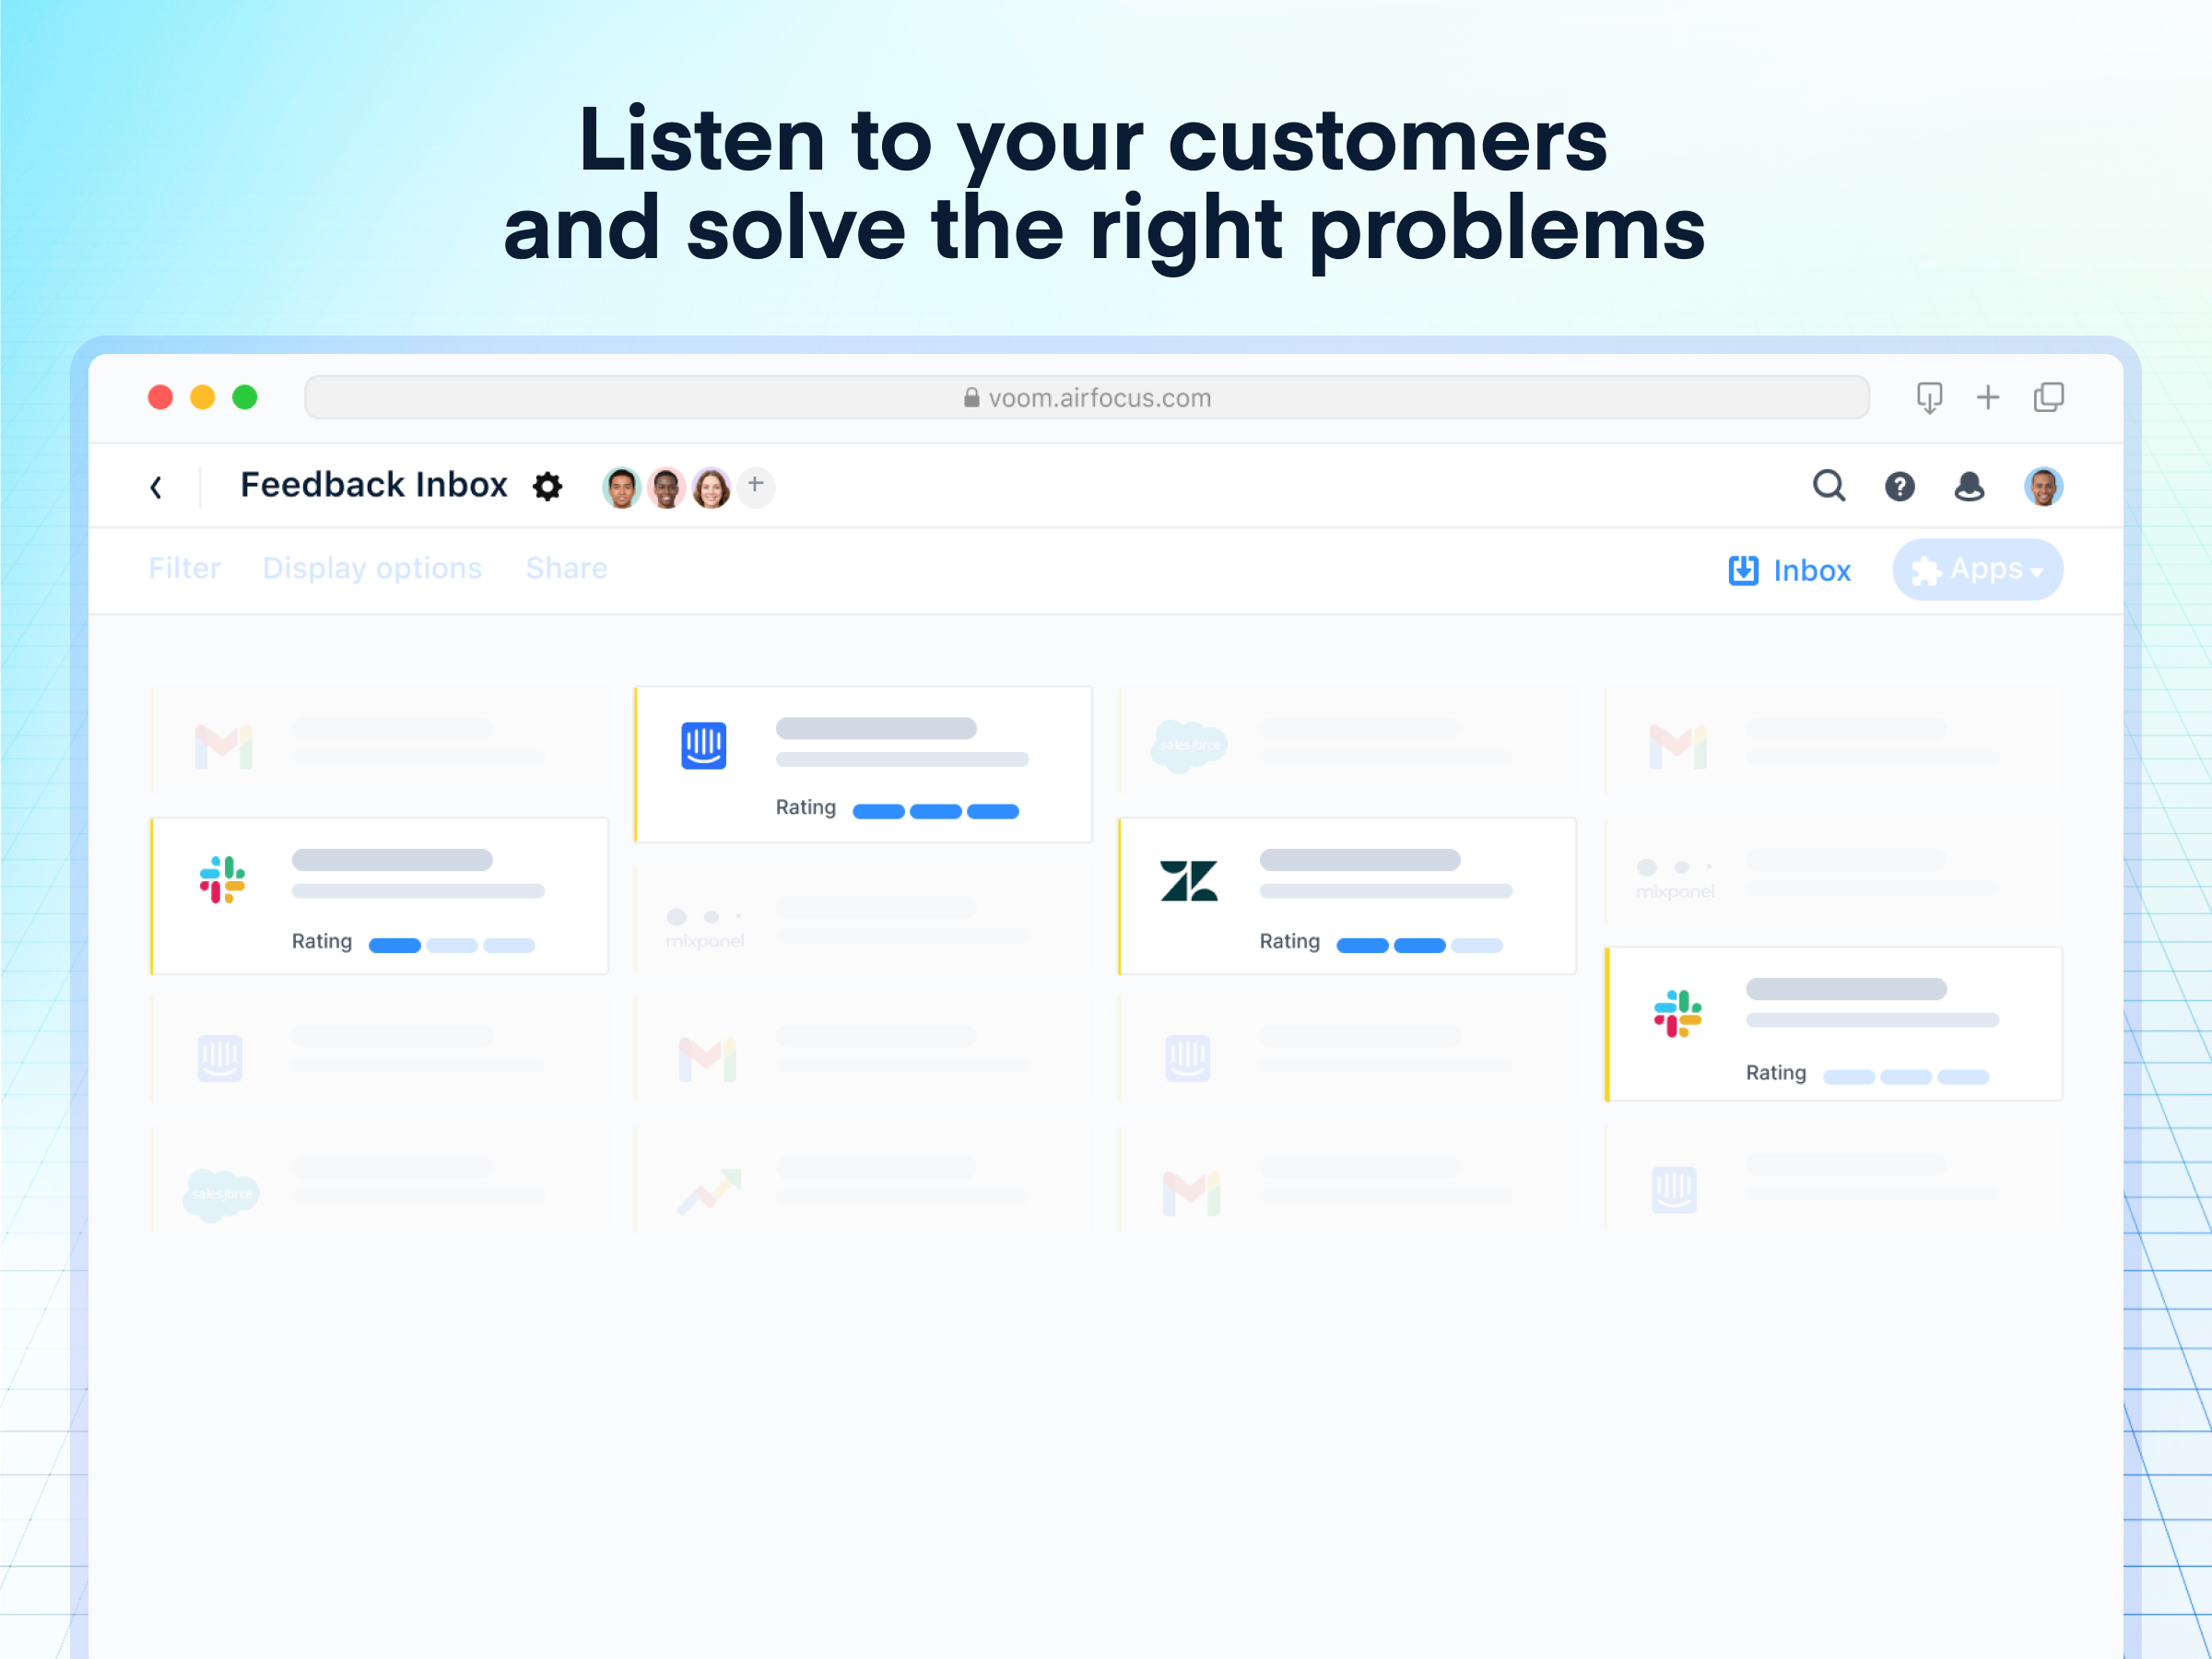 airfocus Software - Listen to your customers and solve the right problems: Centralize feedback from various channels and teams to uncover actionable insights. Cut down on the noise and organize inputs as they come in.